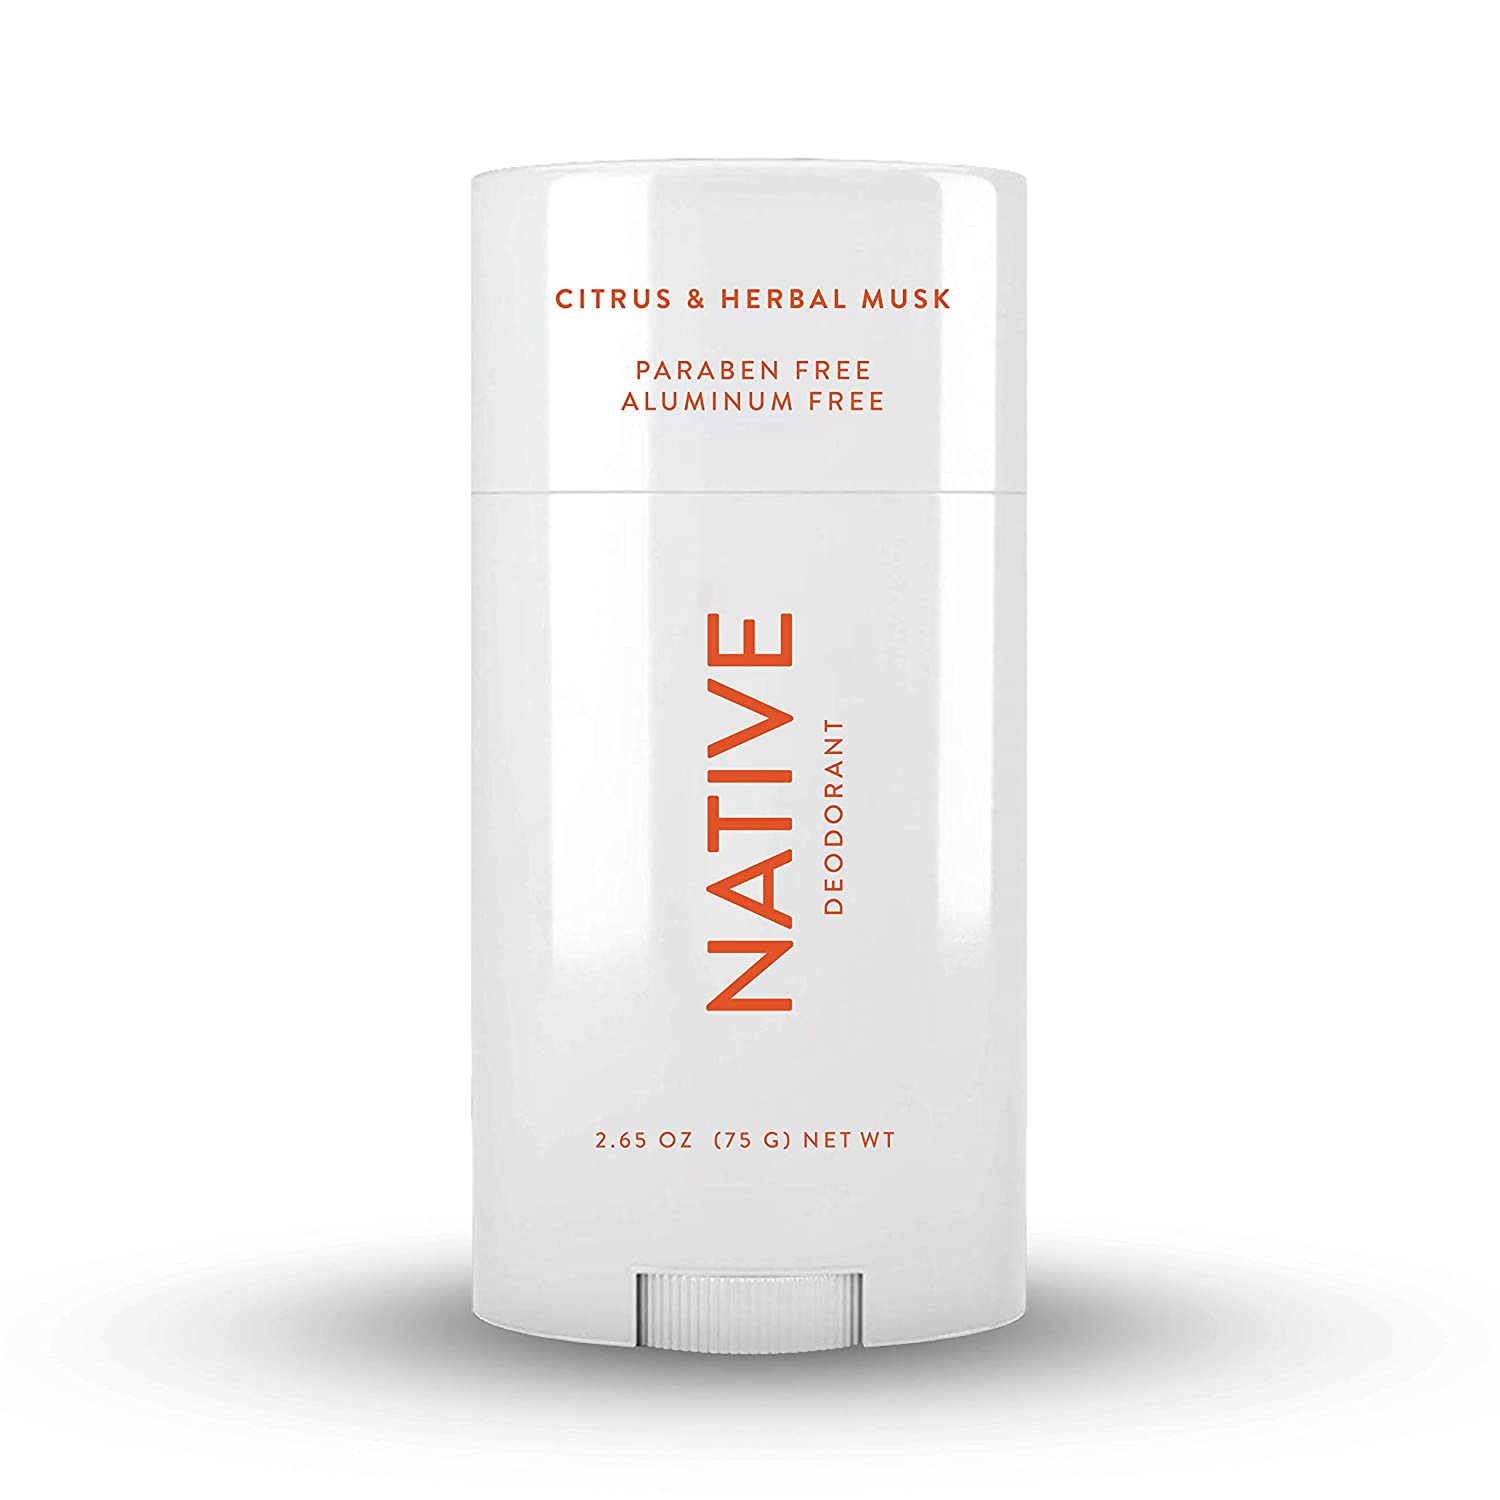 Native deodorant natural deodorant for women and men, herbal musk and citrus